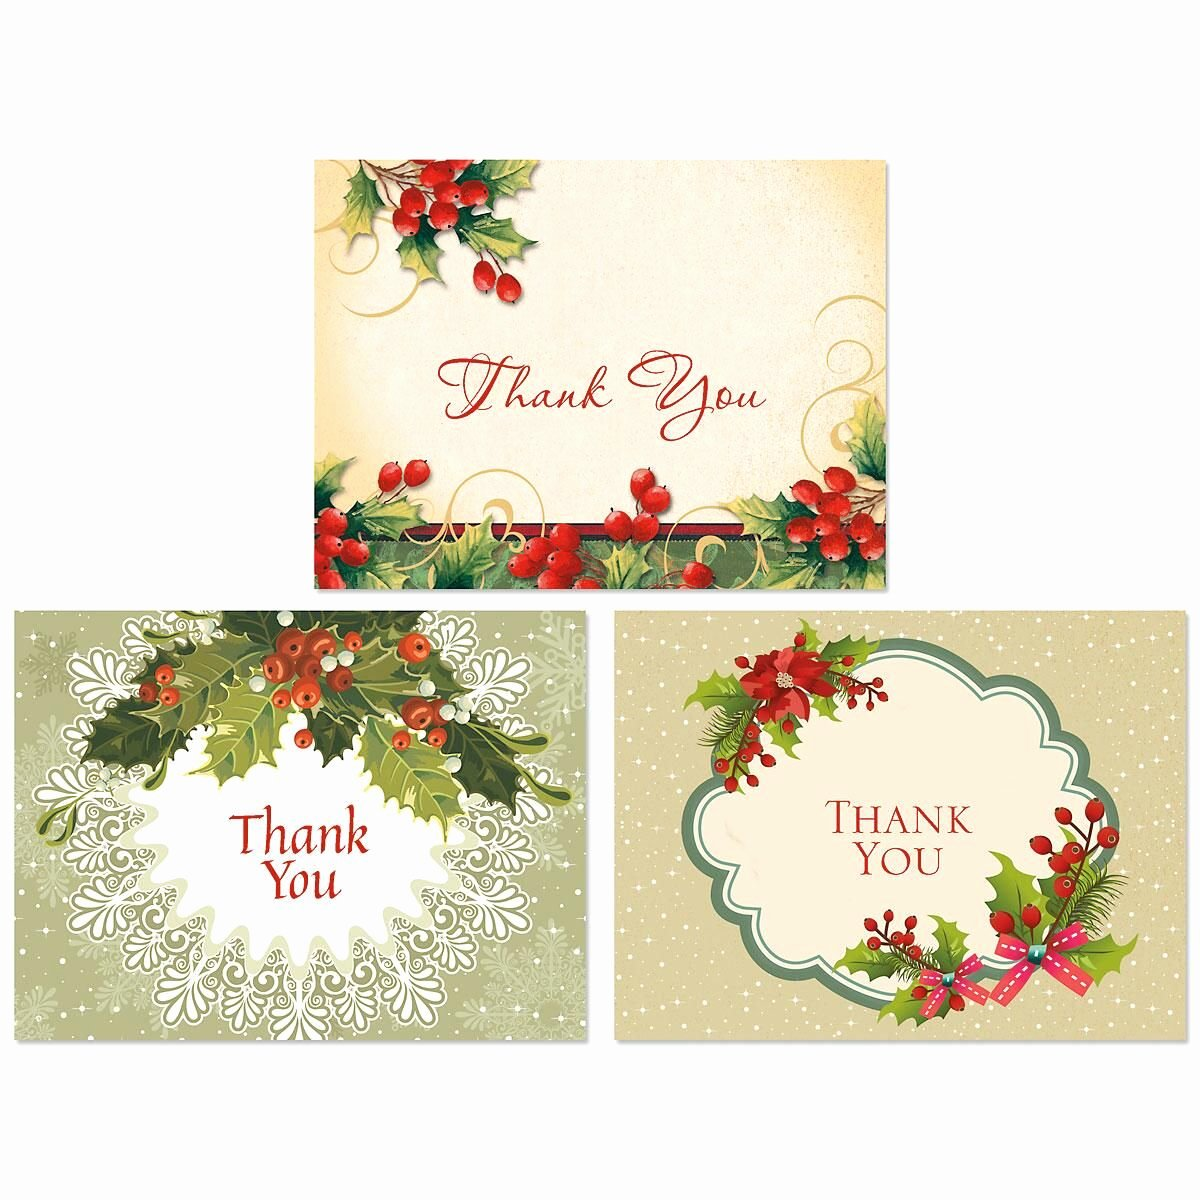 Vintage Thank You Cards Luxury Vintage Christmas Thank You Note Cards